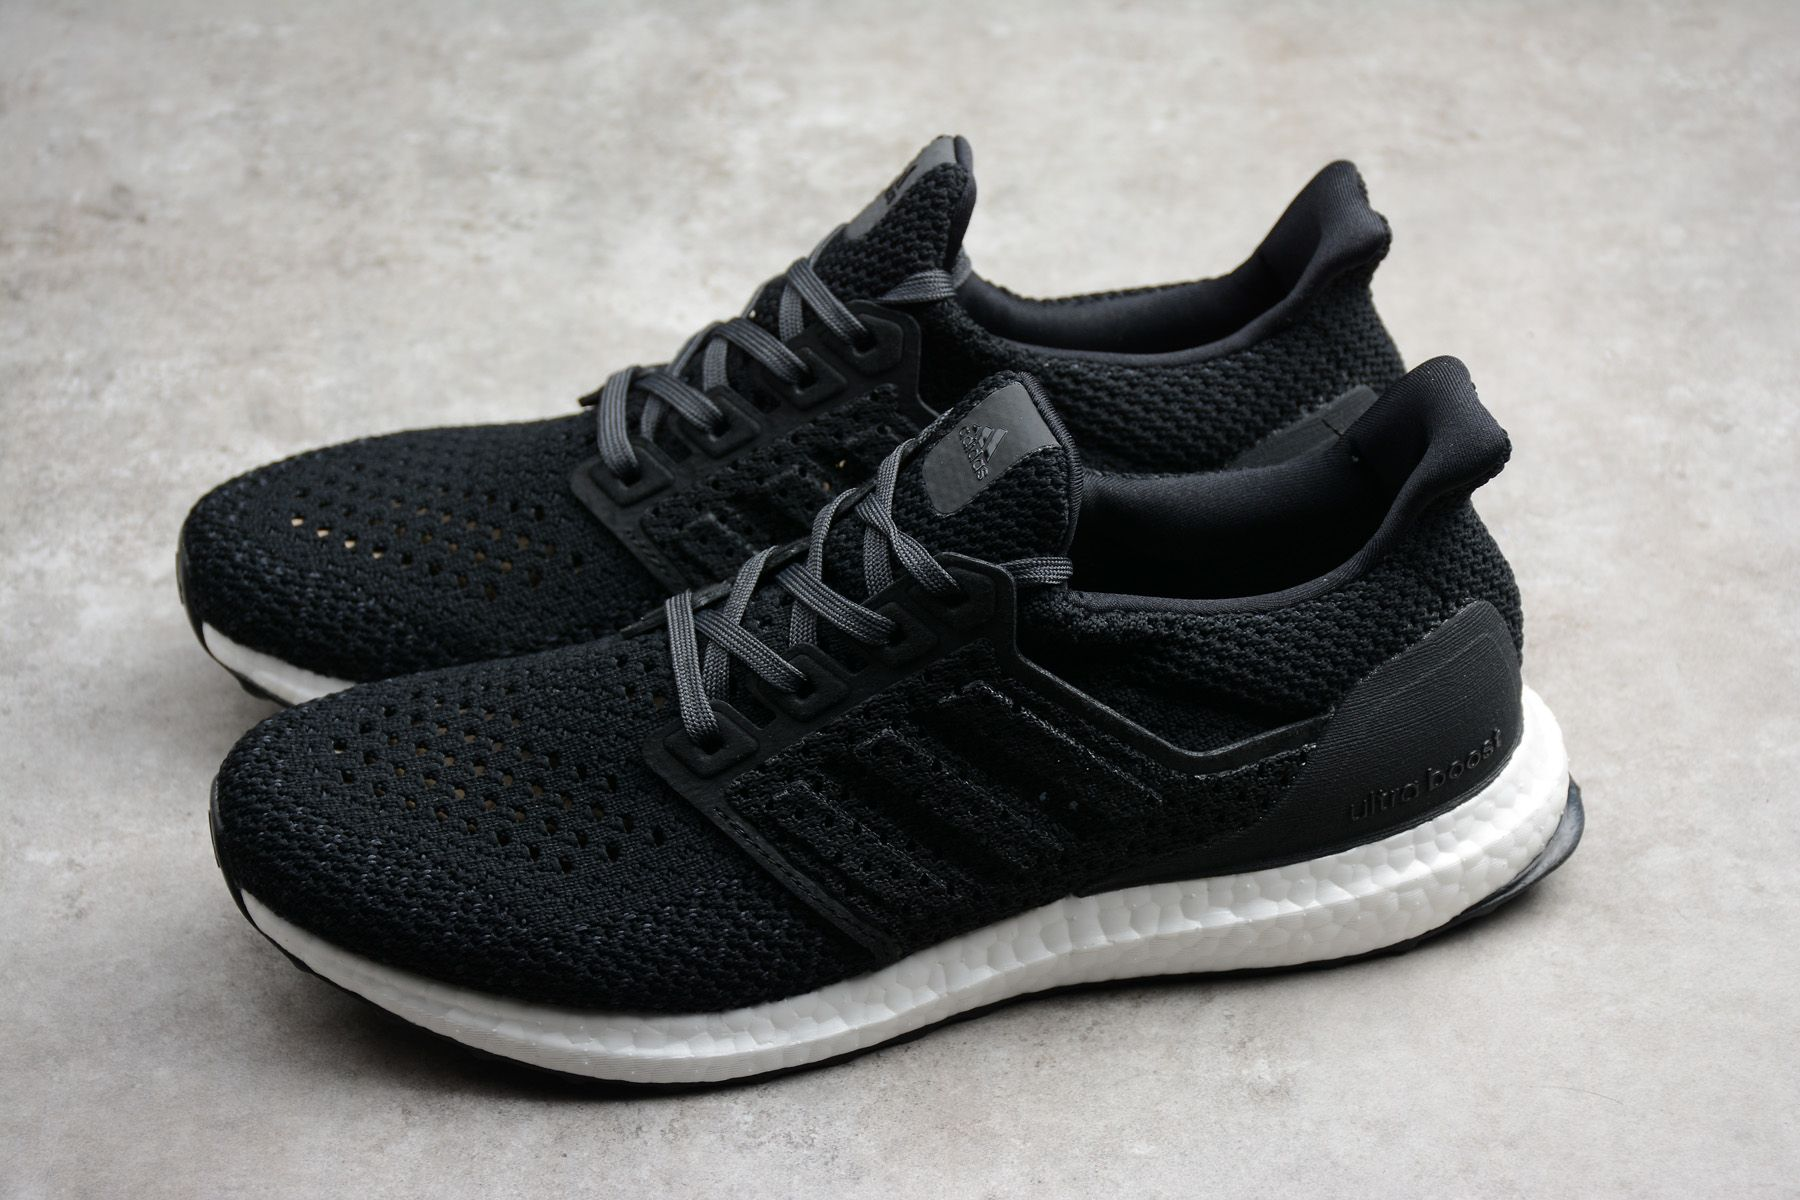 b9ebc32e6552a adidas Ultra Boost Clima 4.0 Black White CQ7081 For Sale Online